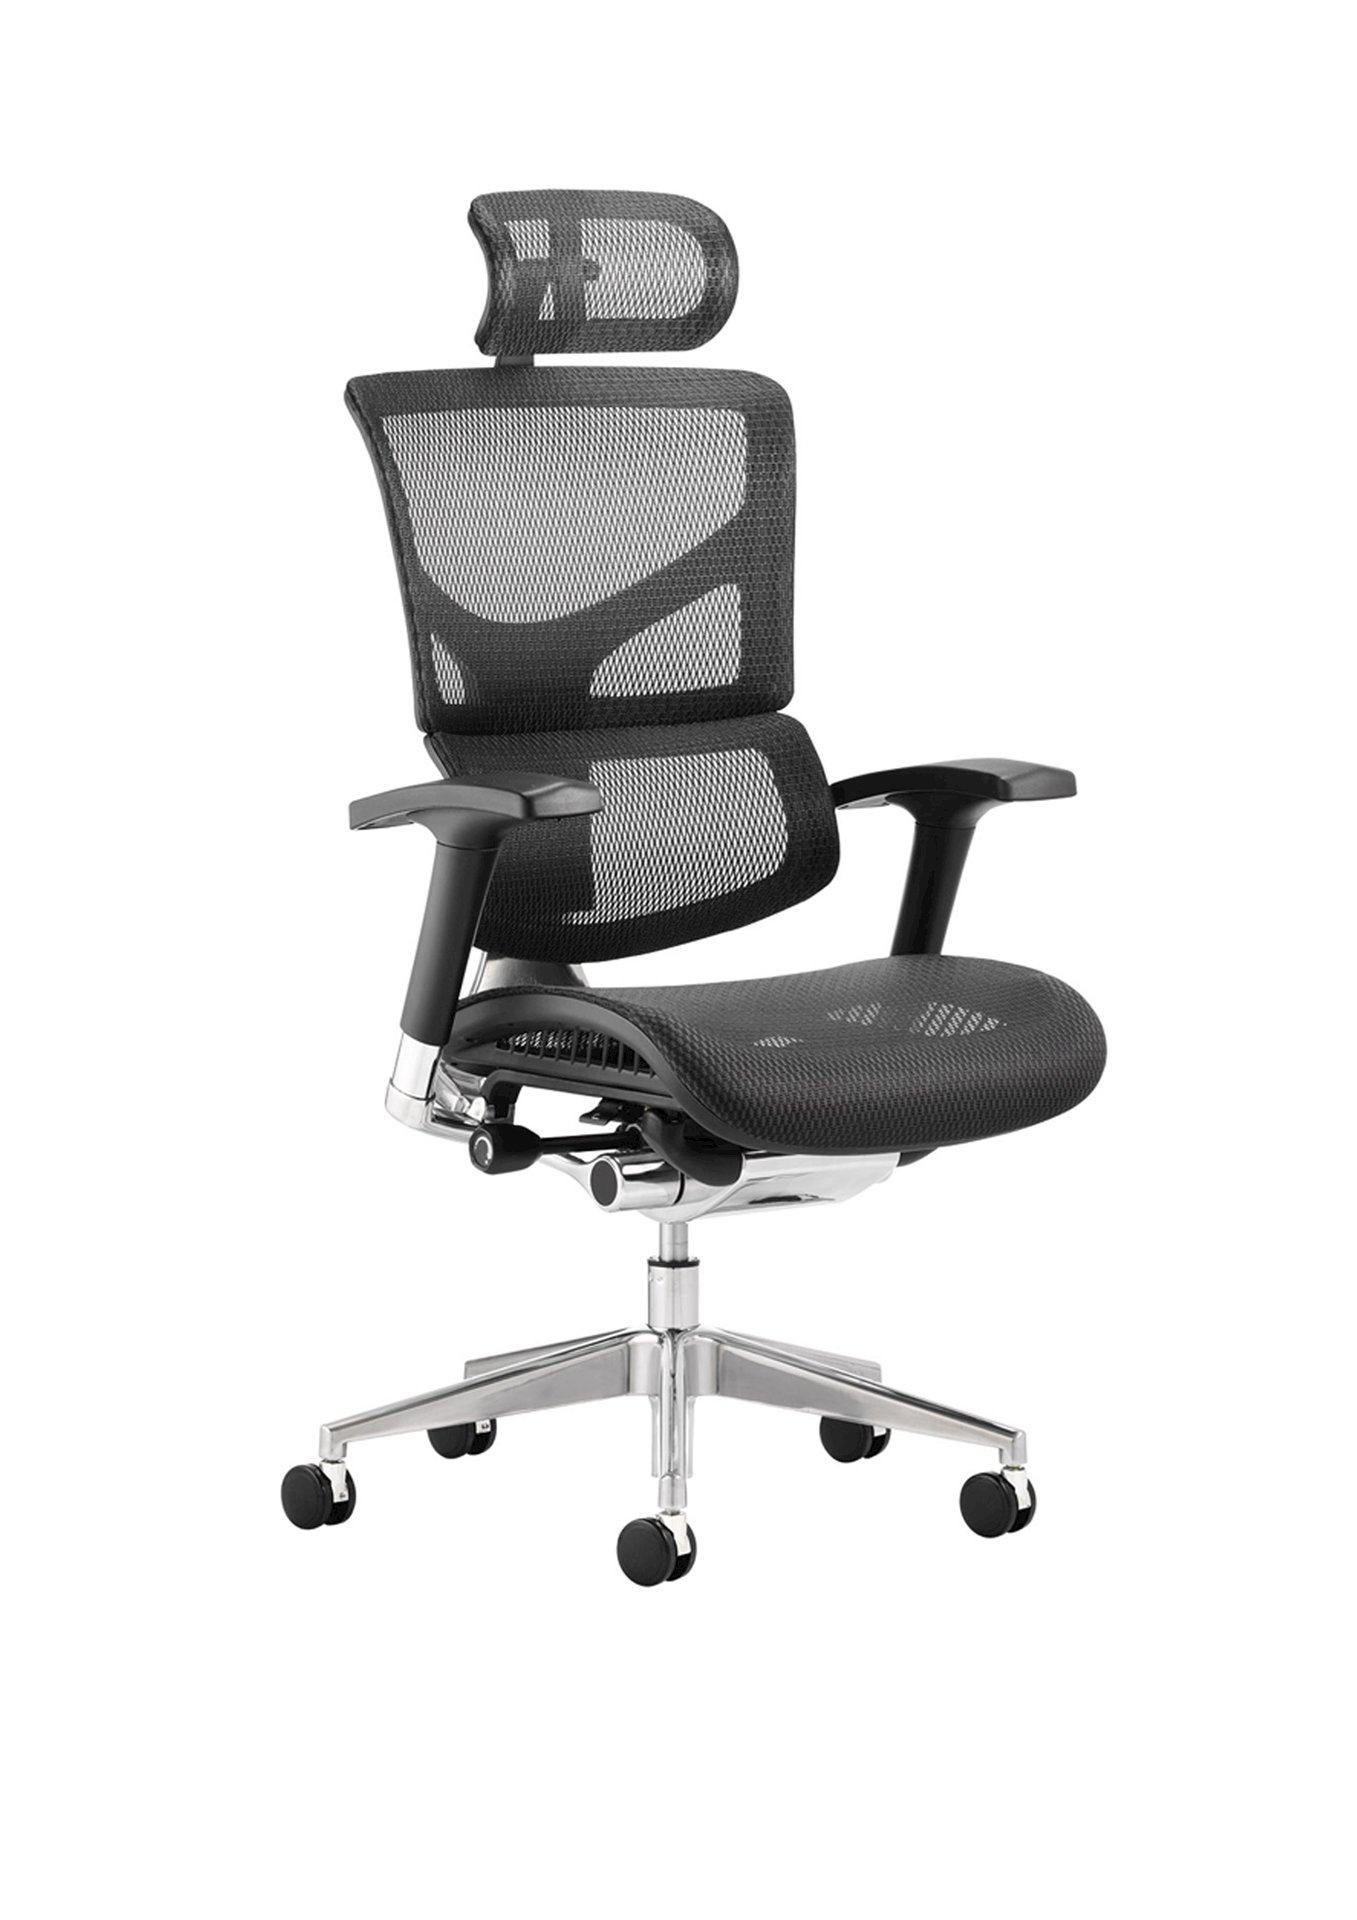 Ergo Dynamic Posture Chair Black Mesh Black Frame With